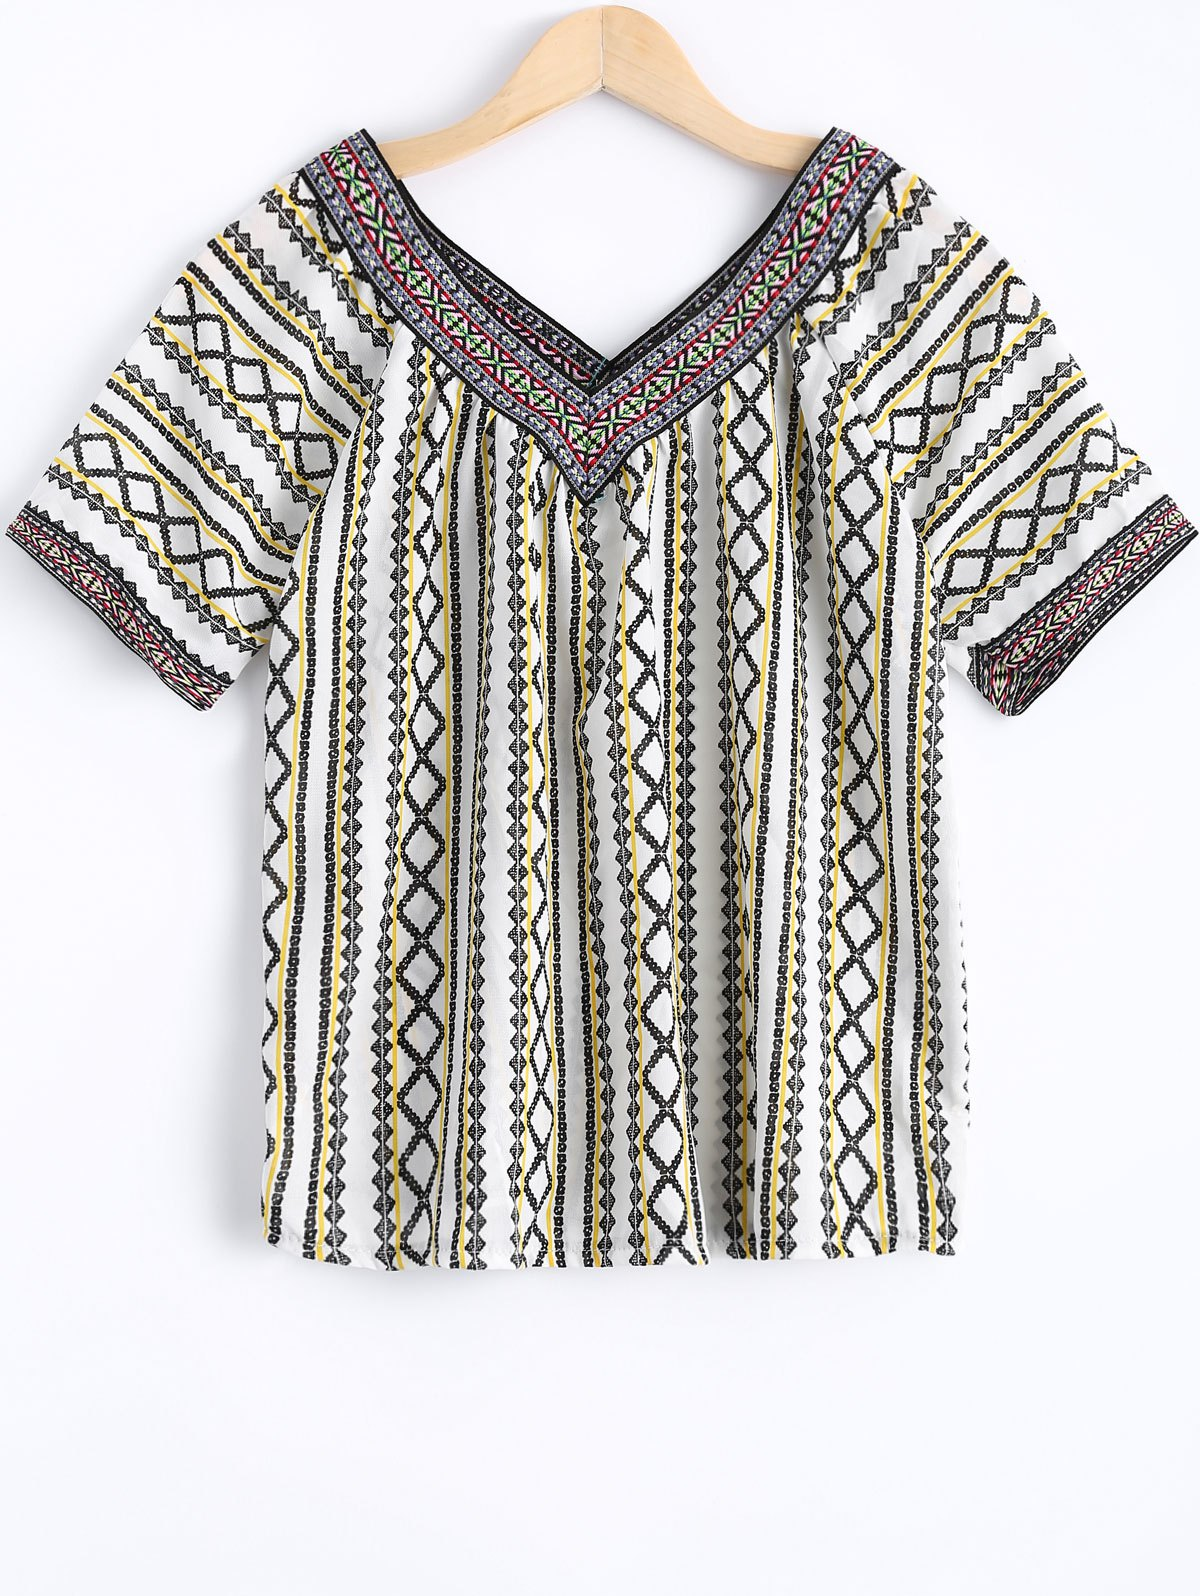 Bohemian Women's V-Neck Short Sleeves Tribal Print Blouse - WHITE ONE SIZE(FIT SIZE XS TO M)